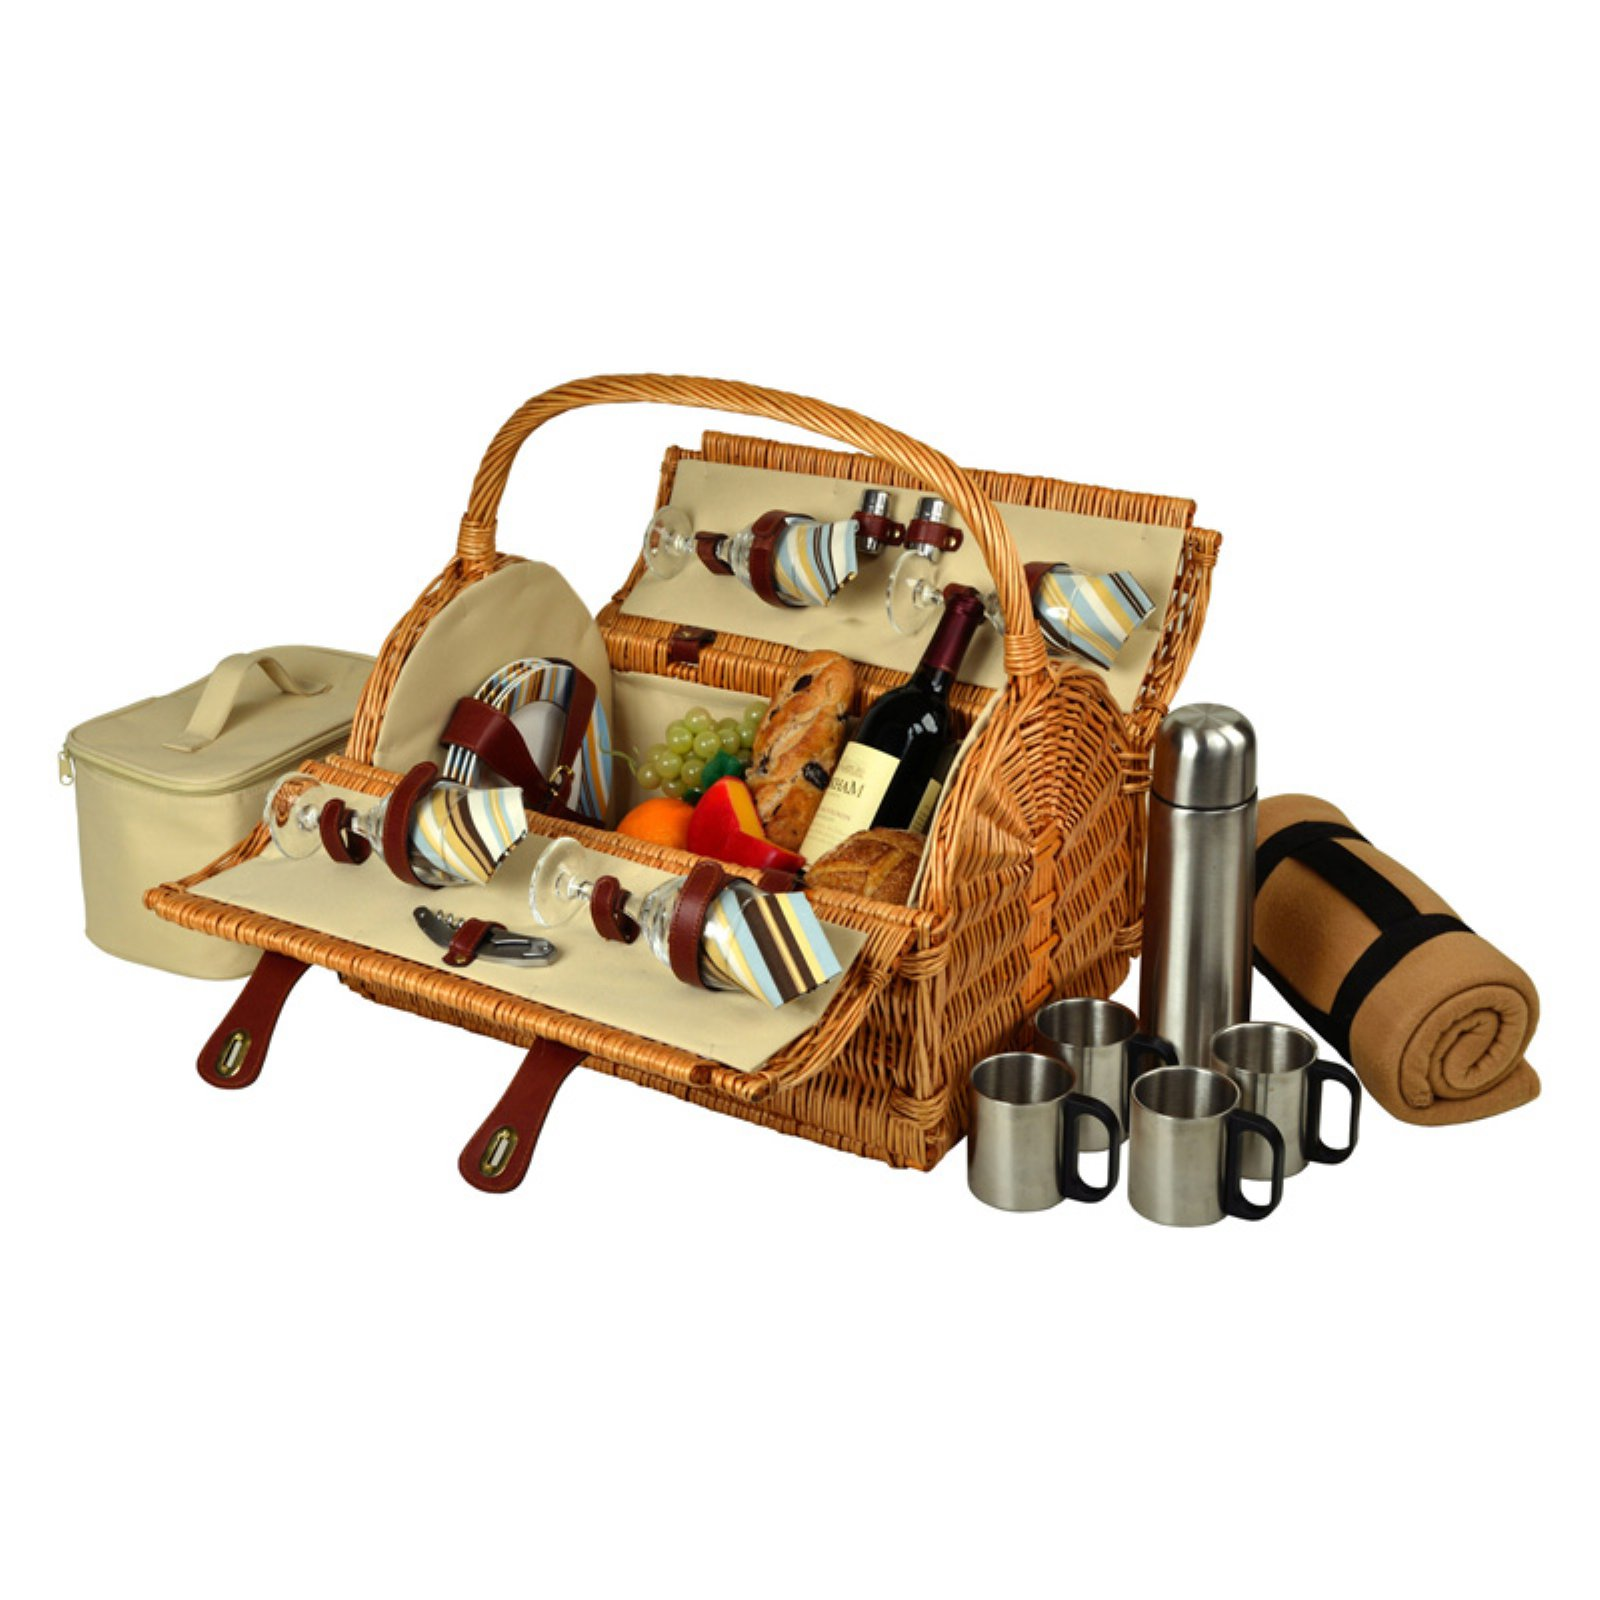 Picnic At Ascot Yorkshire Wicker Picnic Basket for 4 - Gazebo